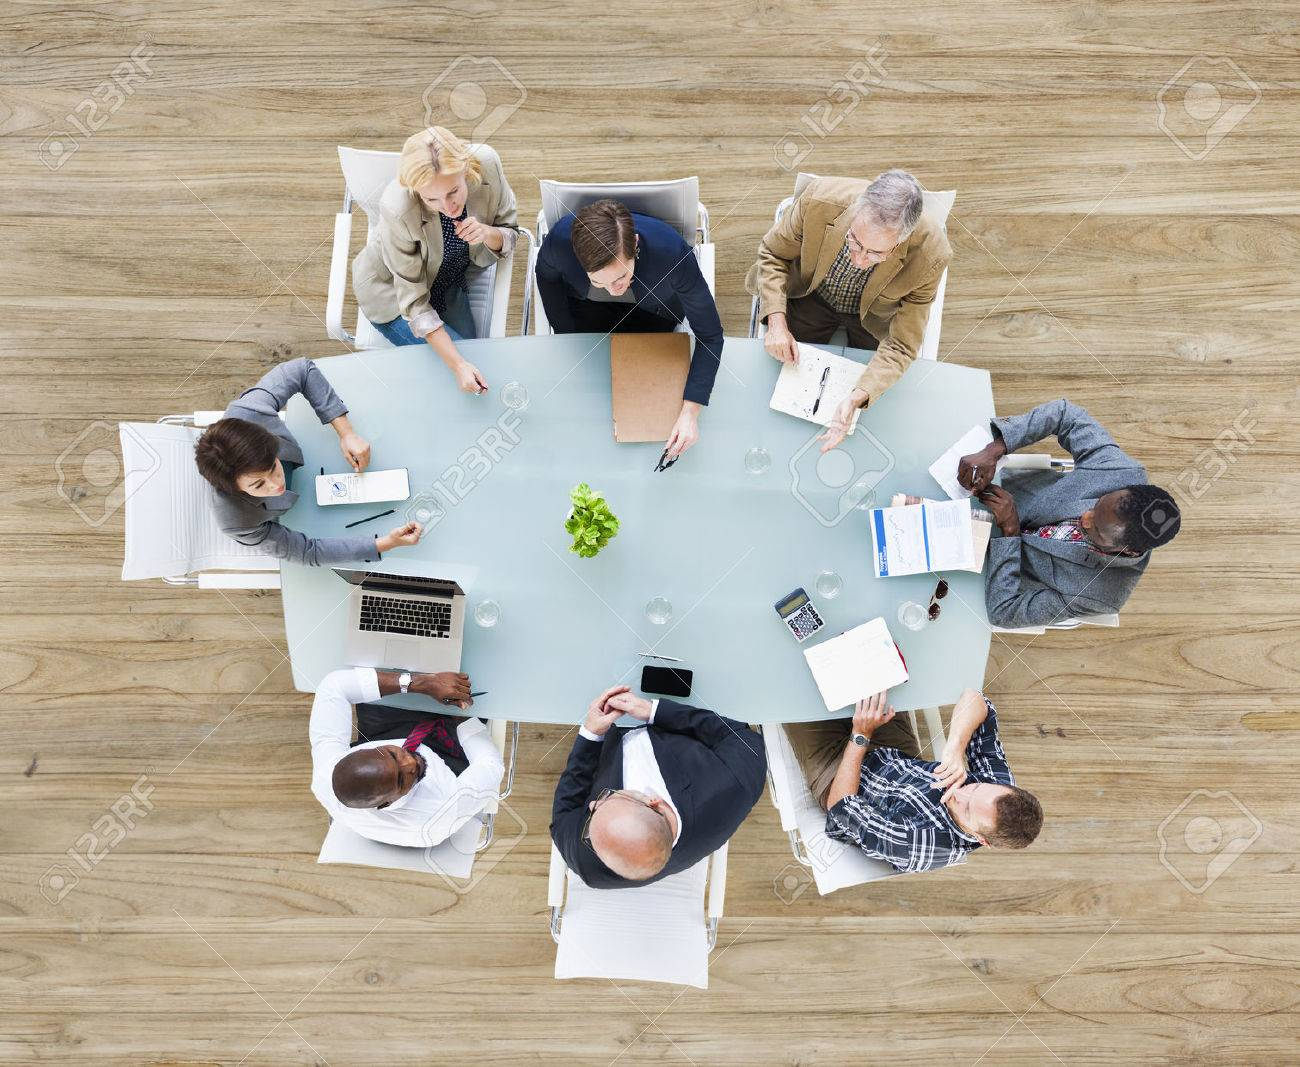 Group of Business People in a Meeting - 31312781